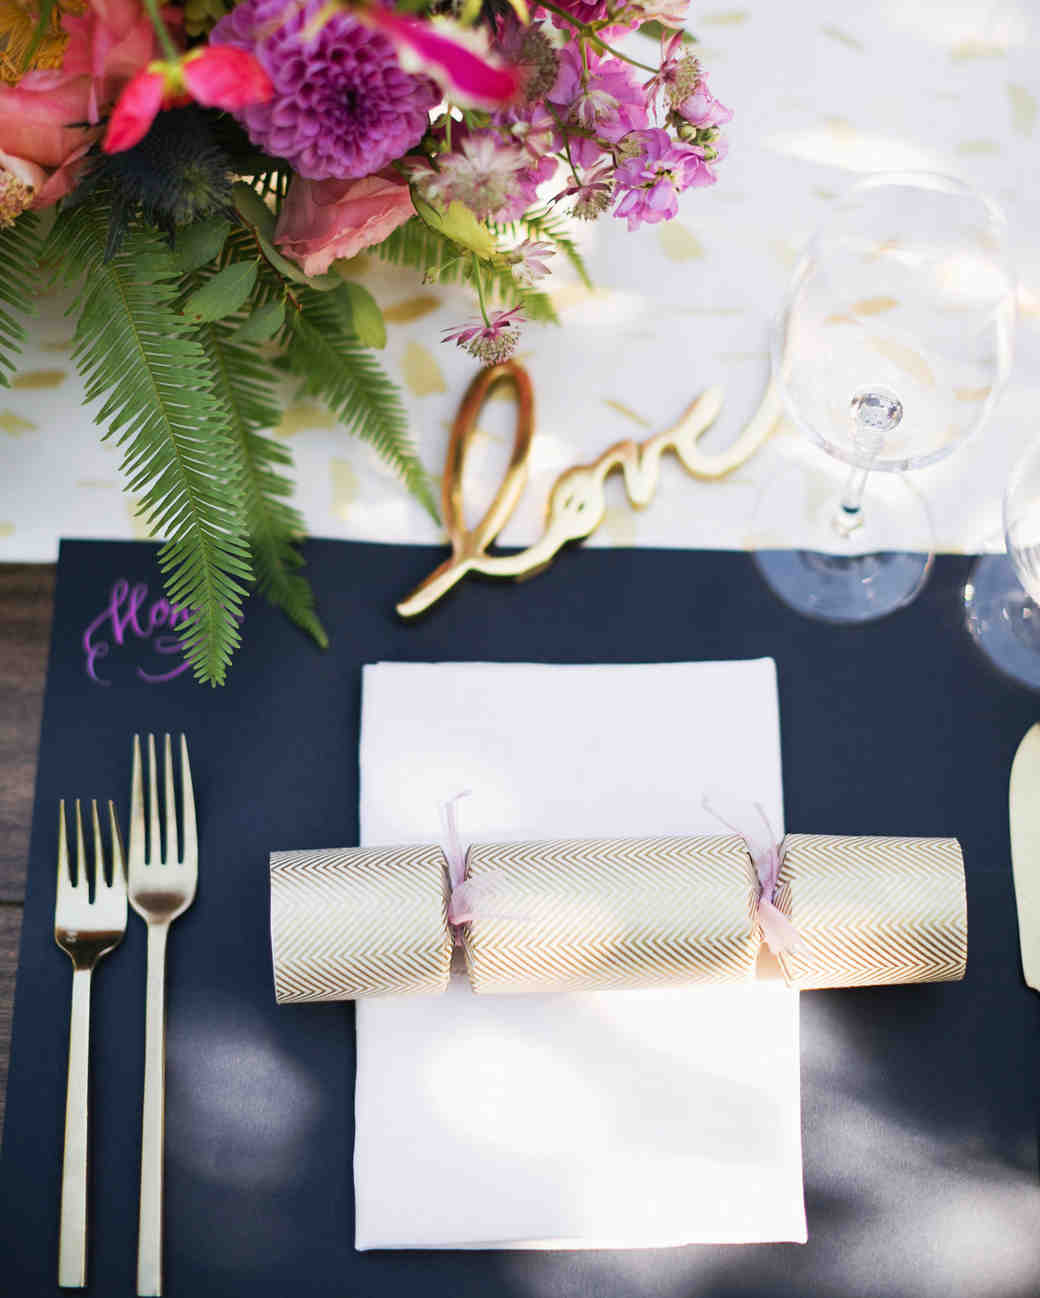 molly adam wedding place setting